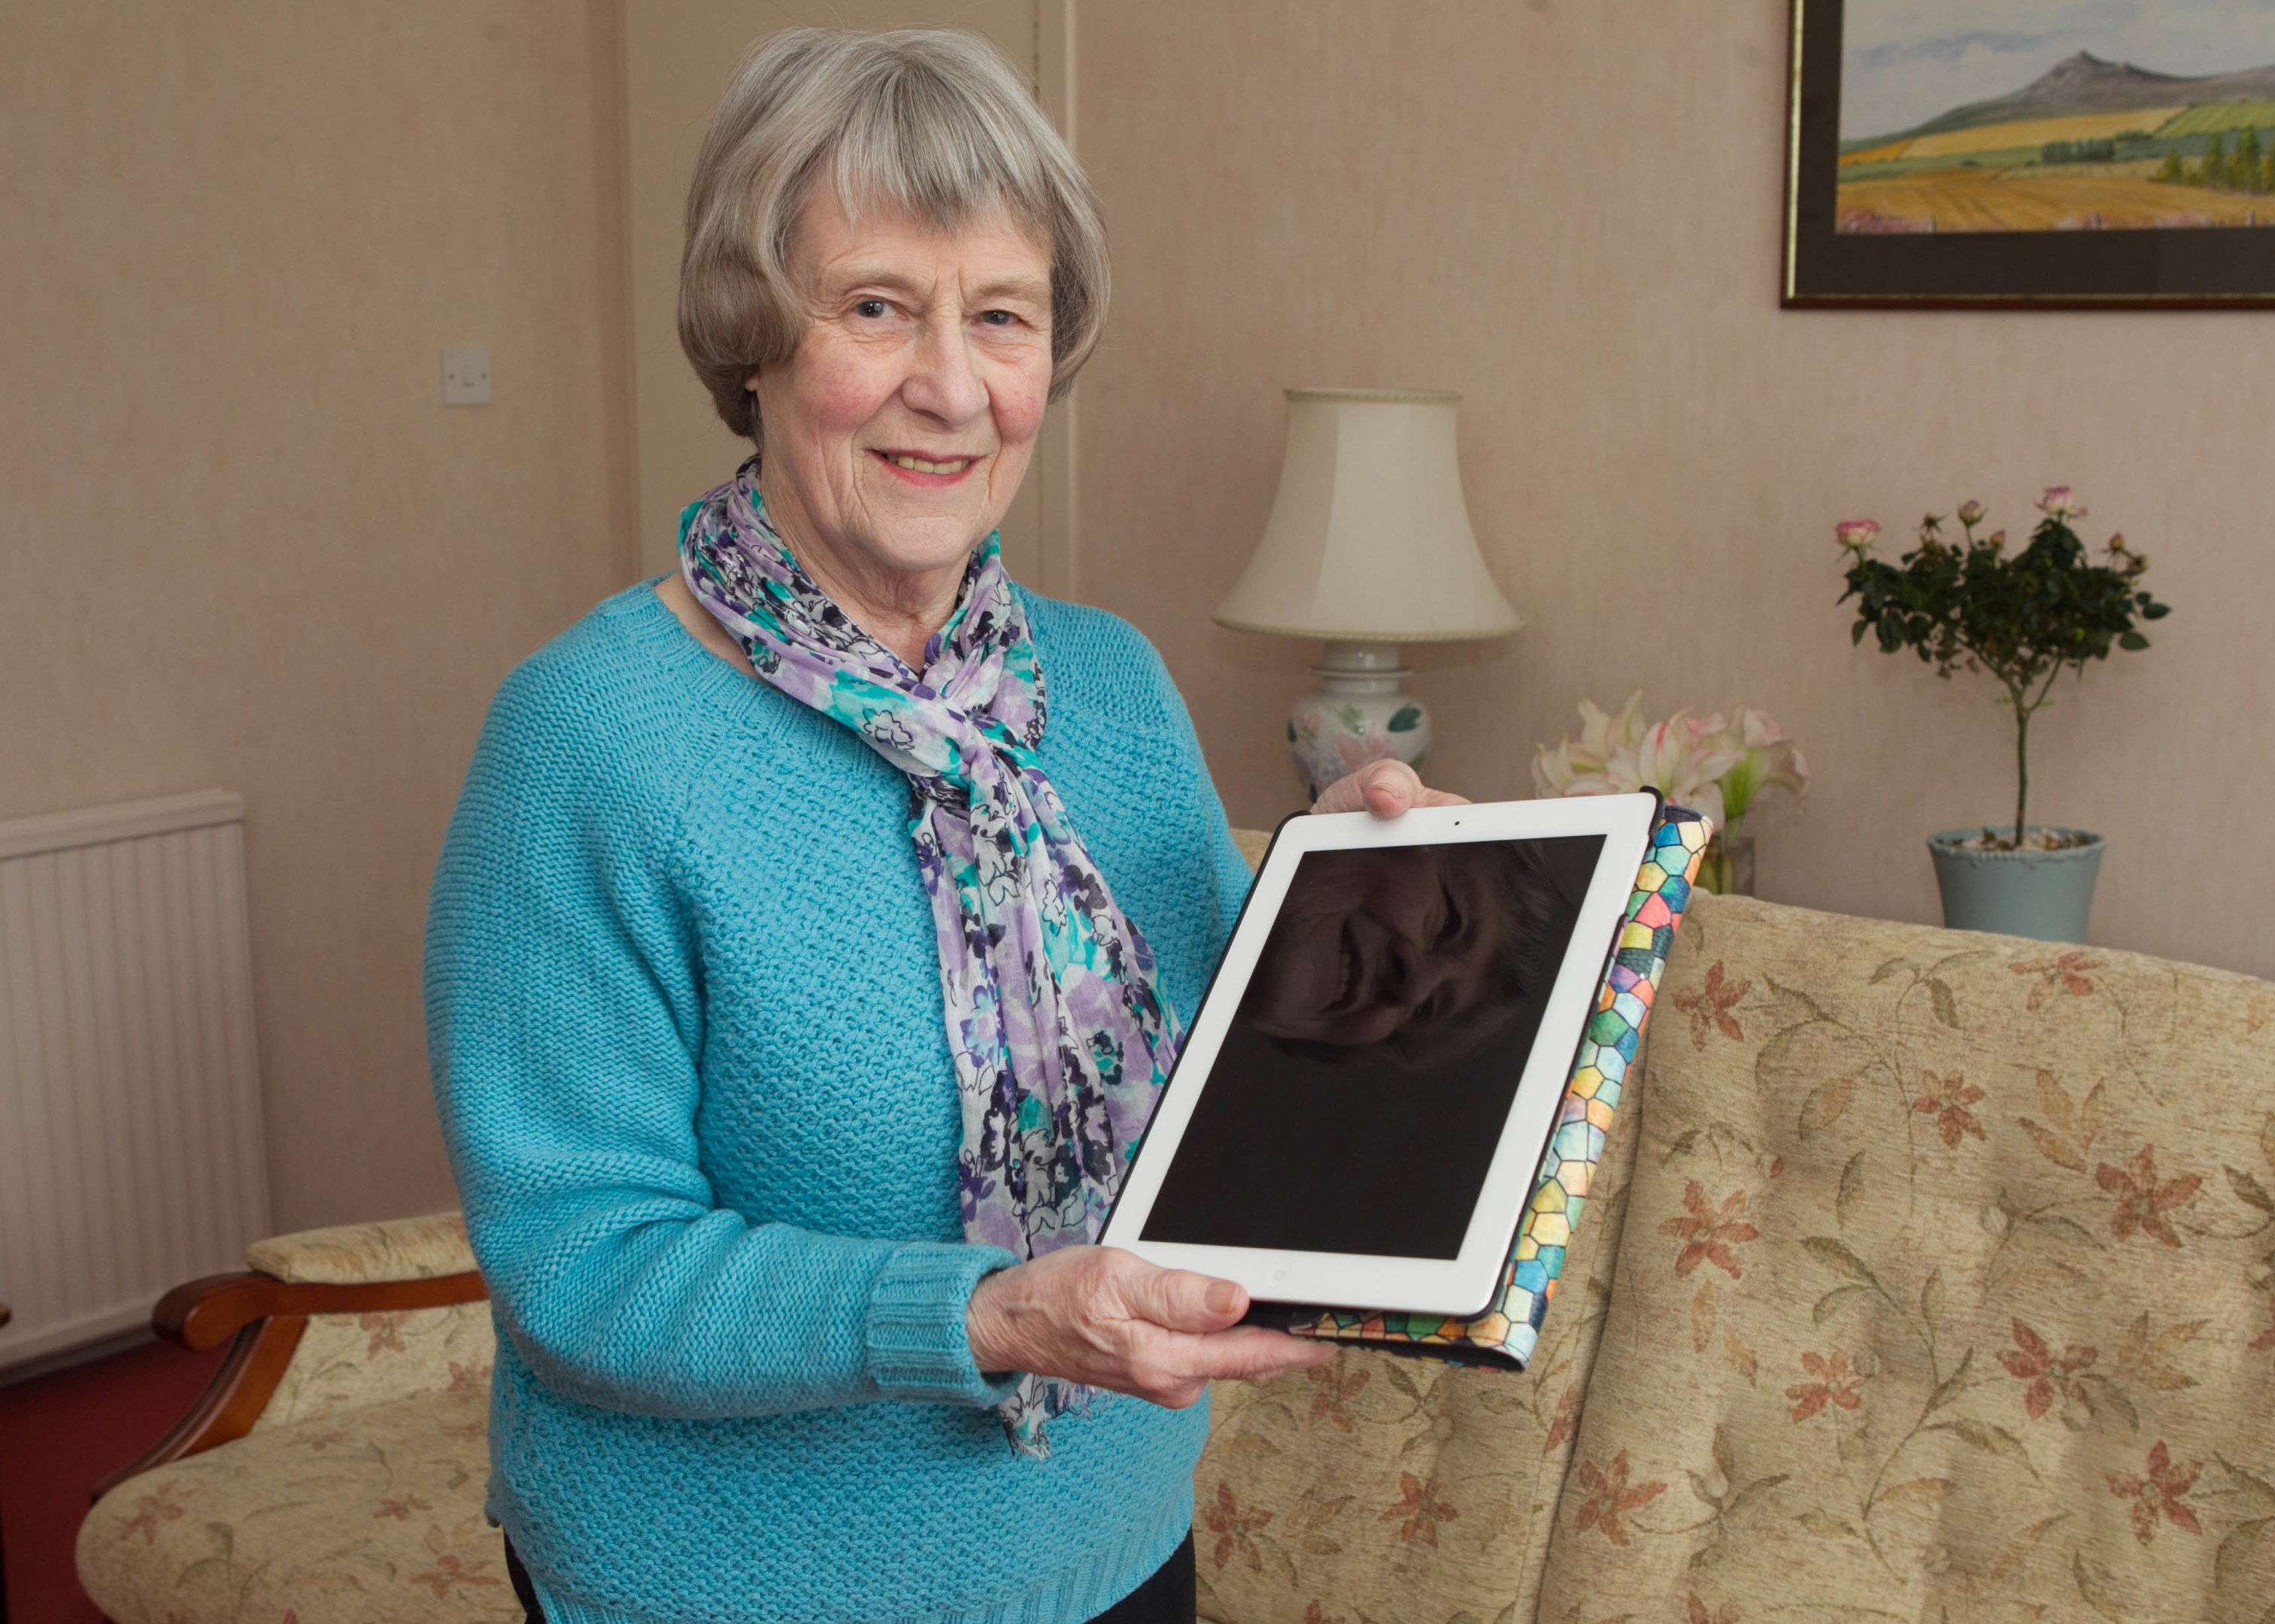 Pam Lawrence has learned how to use an iPad to help her communicate with family in America (Chris Austin / DC Thomson)